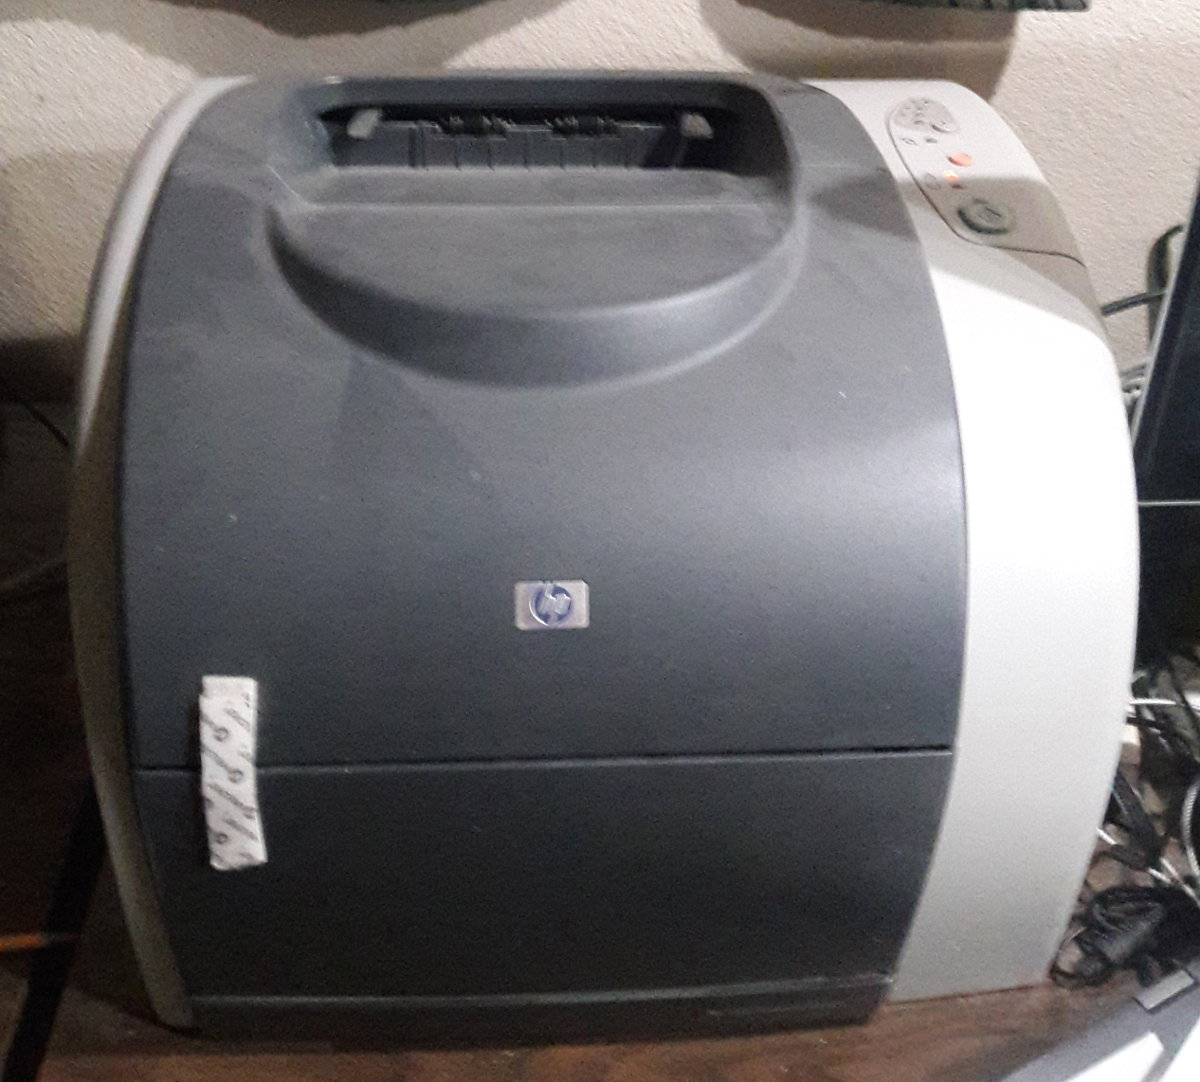 A picture of my old dinosaur printer, also from HP (an L2550 color laser printer)